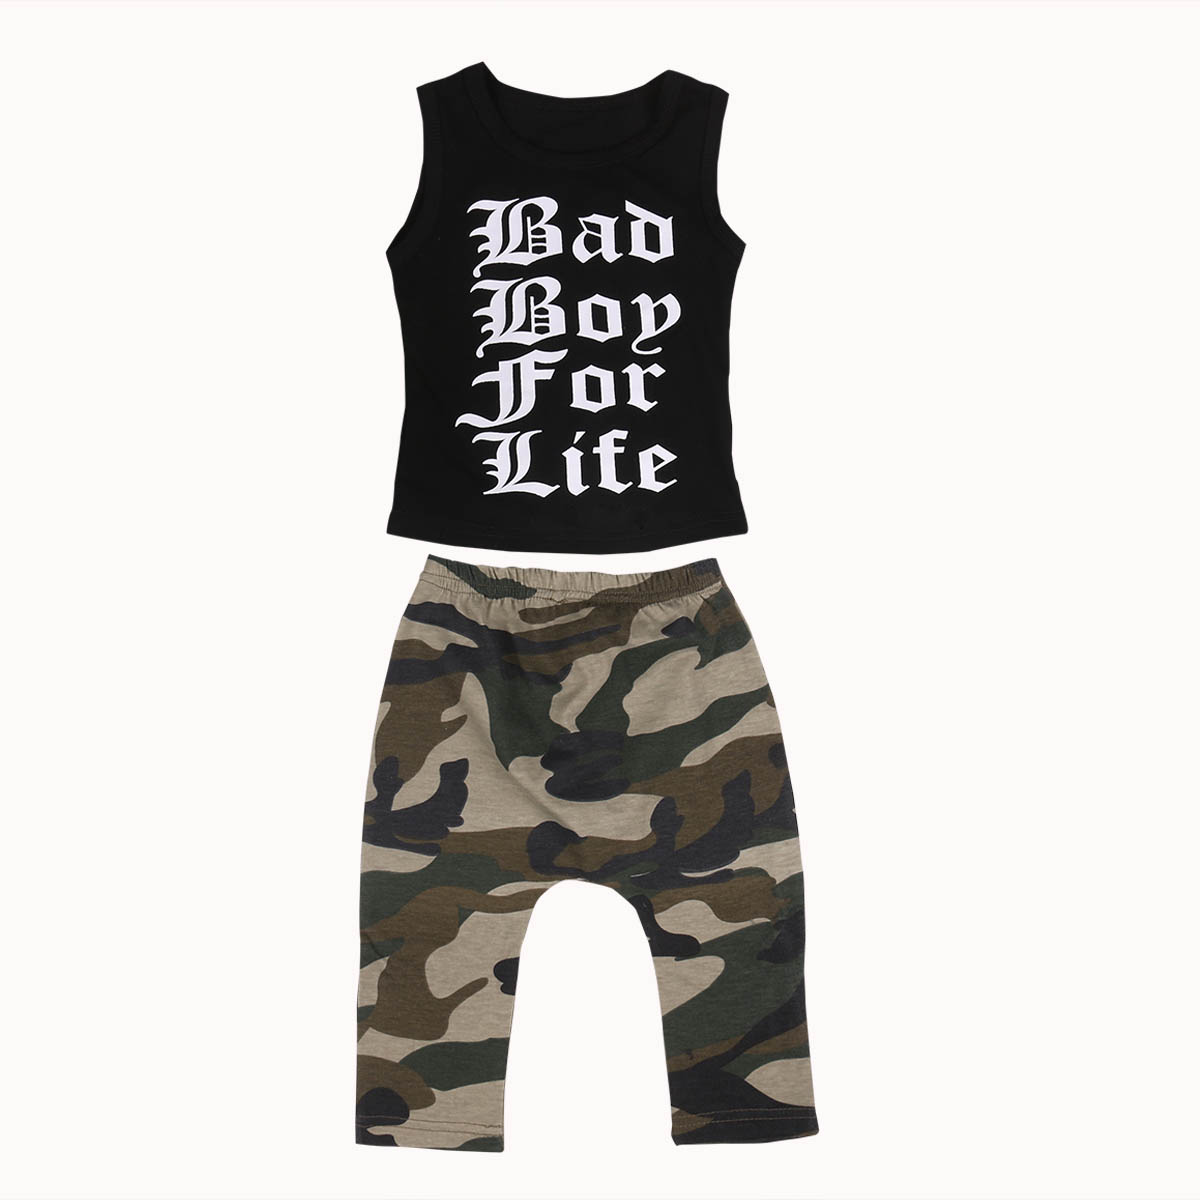 2017 Summer Kids Boy Clothing Set Sleeveless Letter Print Vest T-shirt Tops+Camouflage Pant 2PCS Children Clothes 0-4Y flower sleeveless vest t shirt tops vest shorts pants outfit girl clothes set 2pcs baby children girls kids clothing bow knot